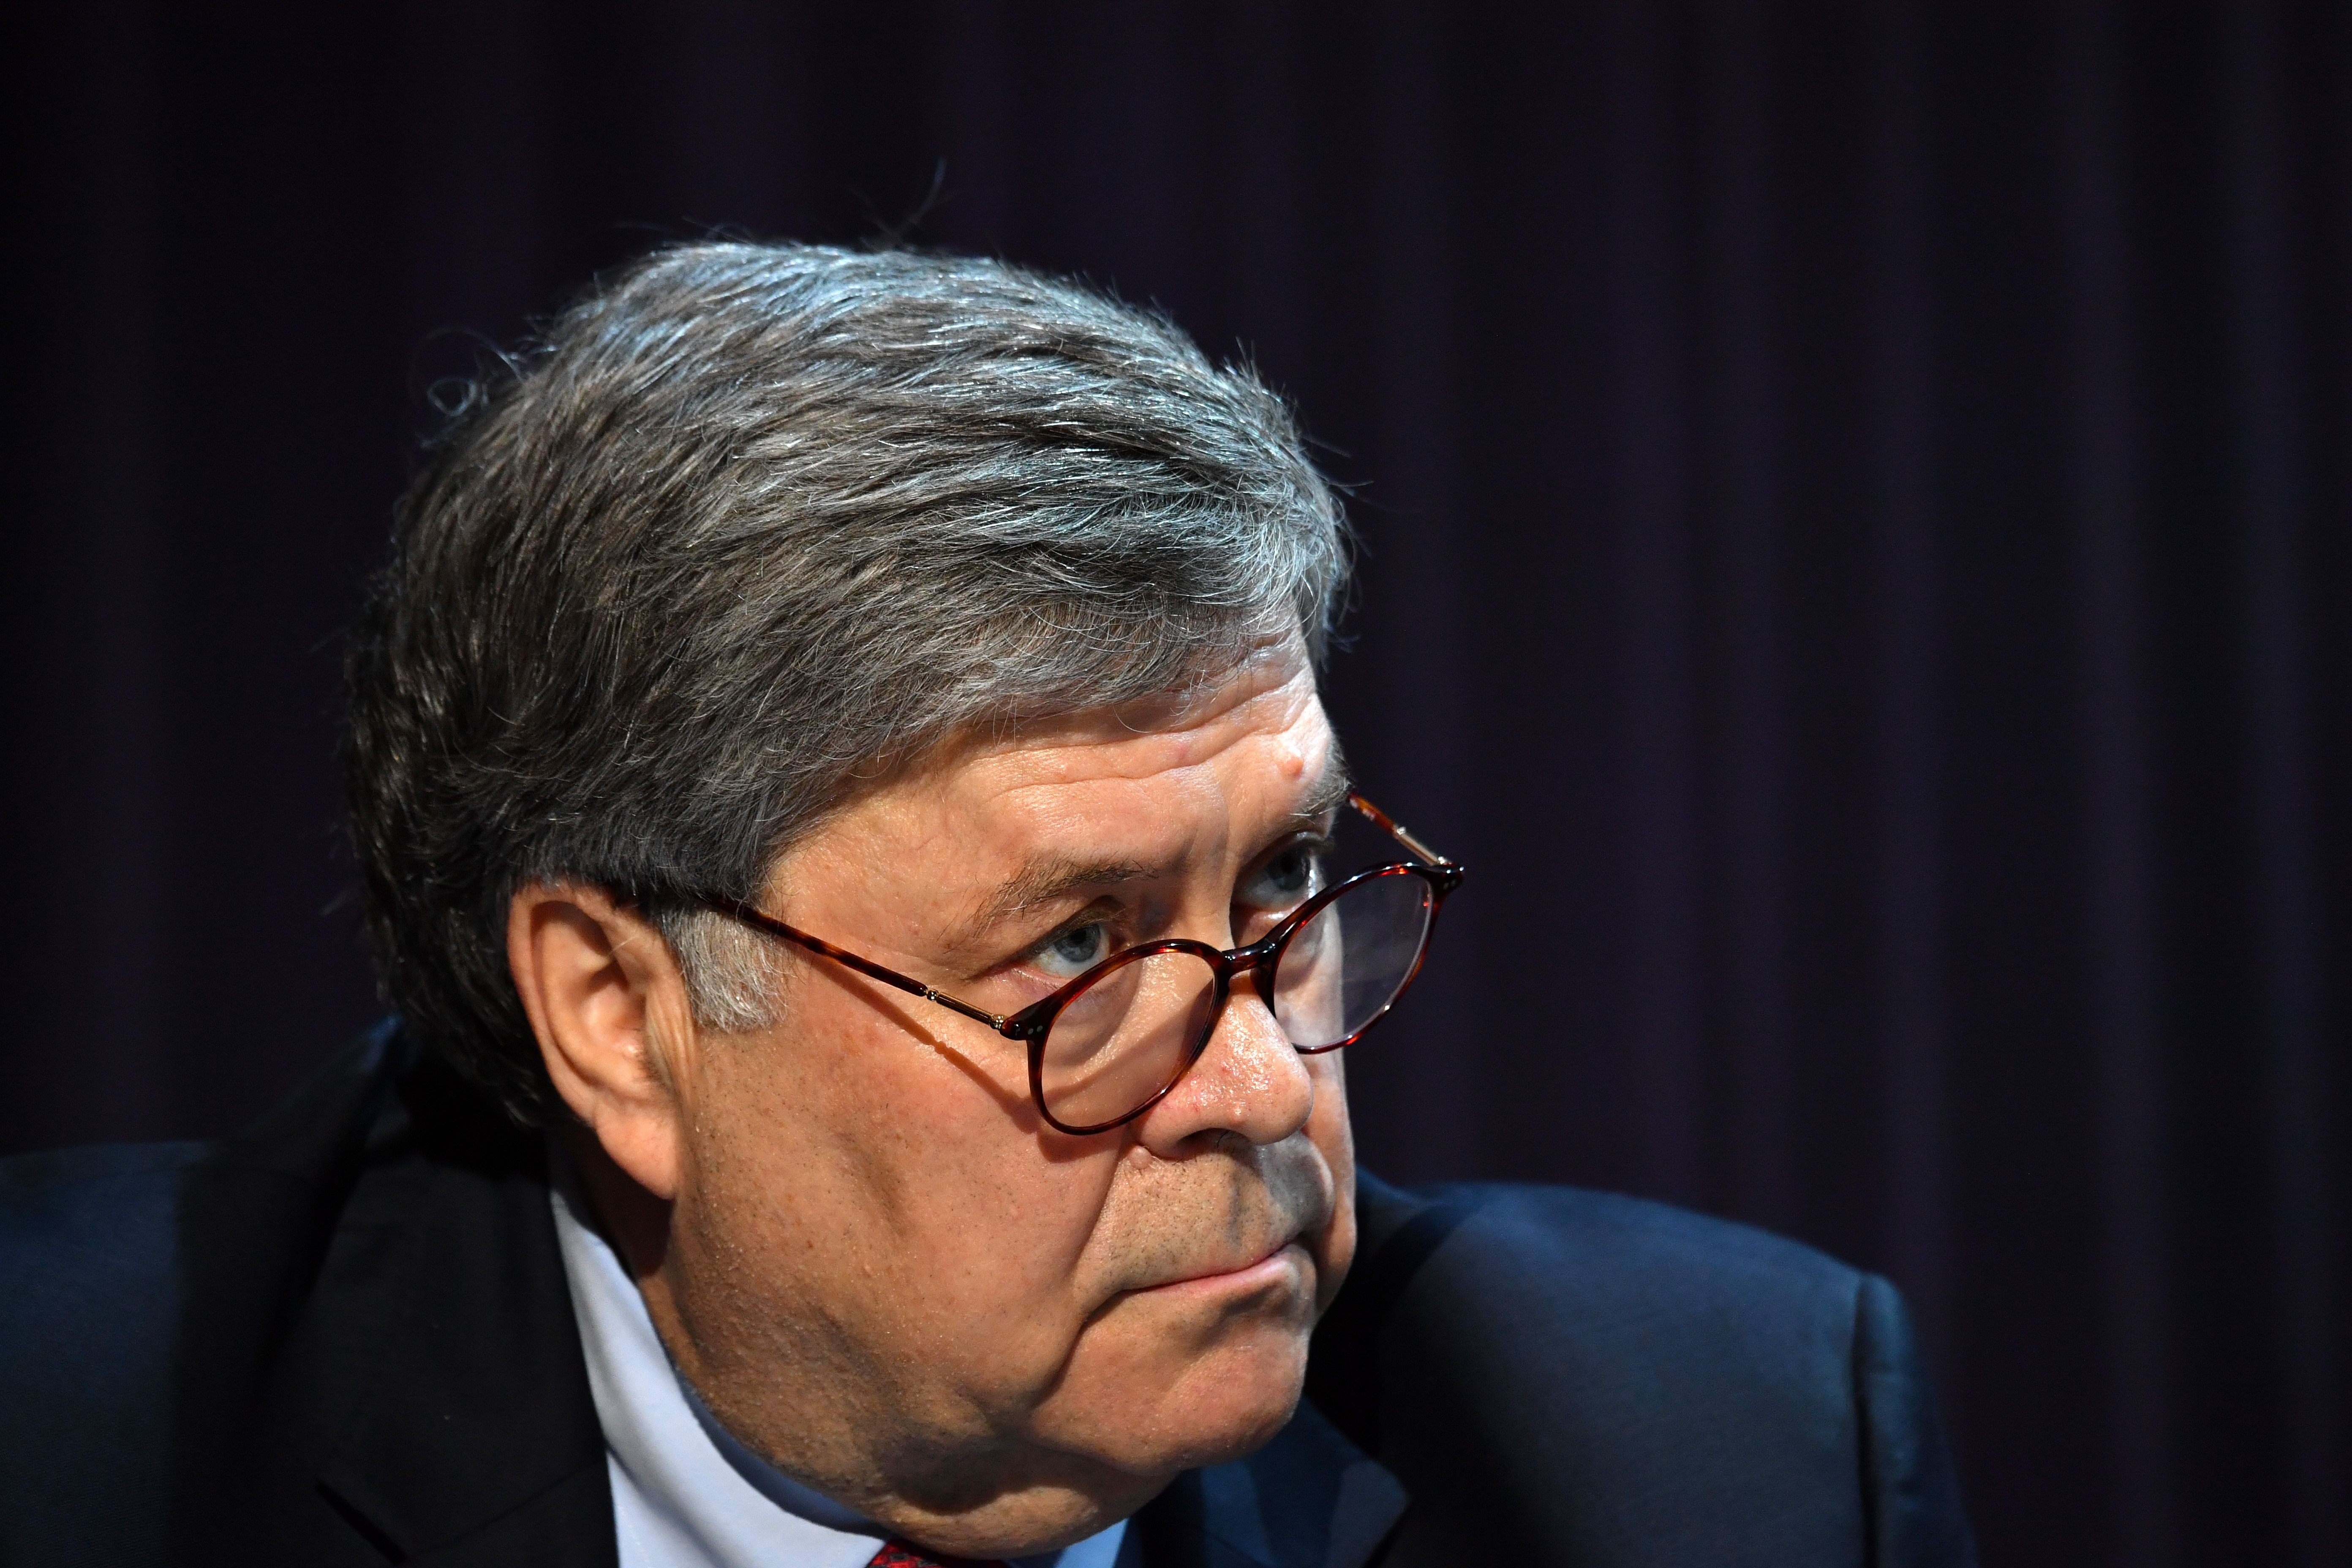 US Attorney General William Barr looks on during a roundtable with US President Donald Trump,faith leaders and small business owners at Gateway Church Dallas Campus in Dallas, Texas, on June 11, 2020. (Photo by NICHOLAS KAMM/AFP via Getty Images)